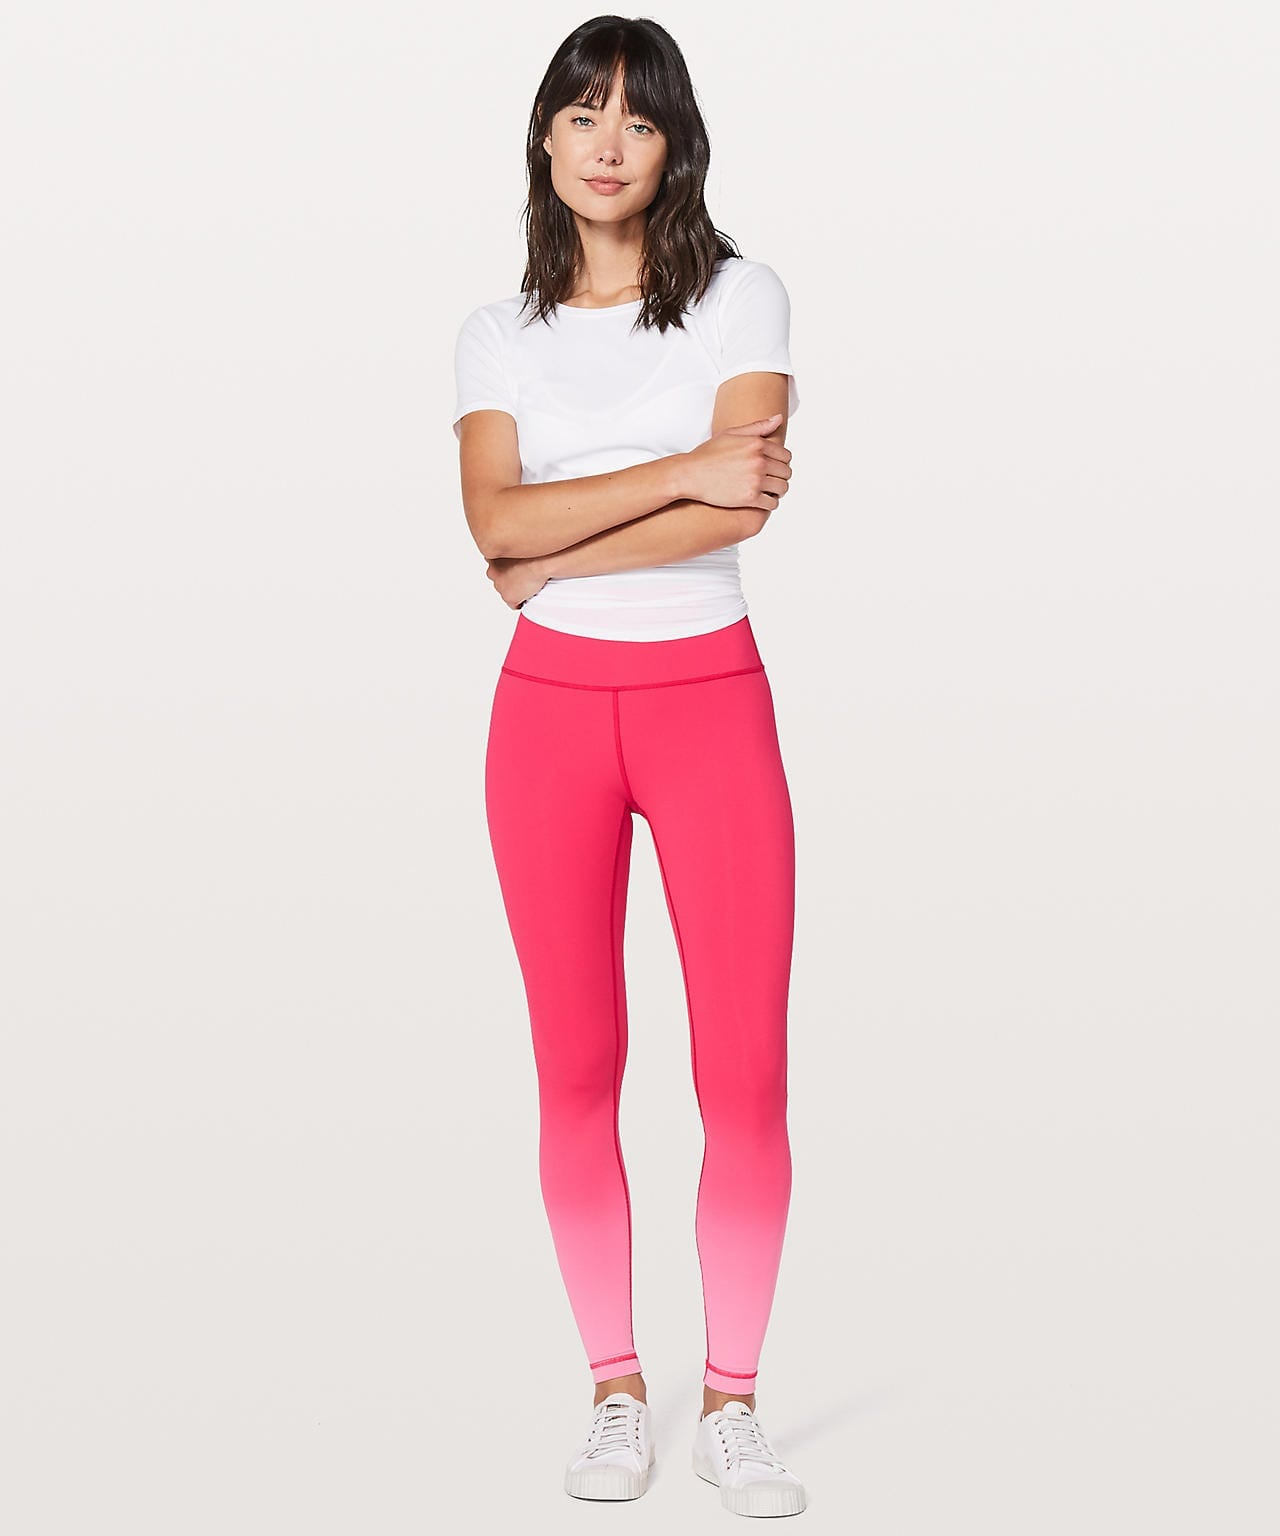 732598fbe The Lululemon New Product Upload